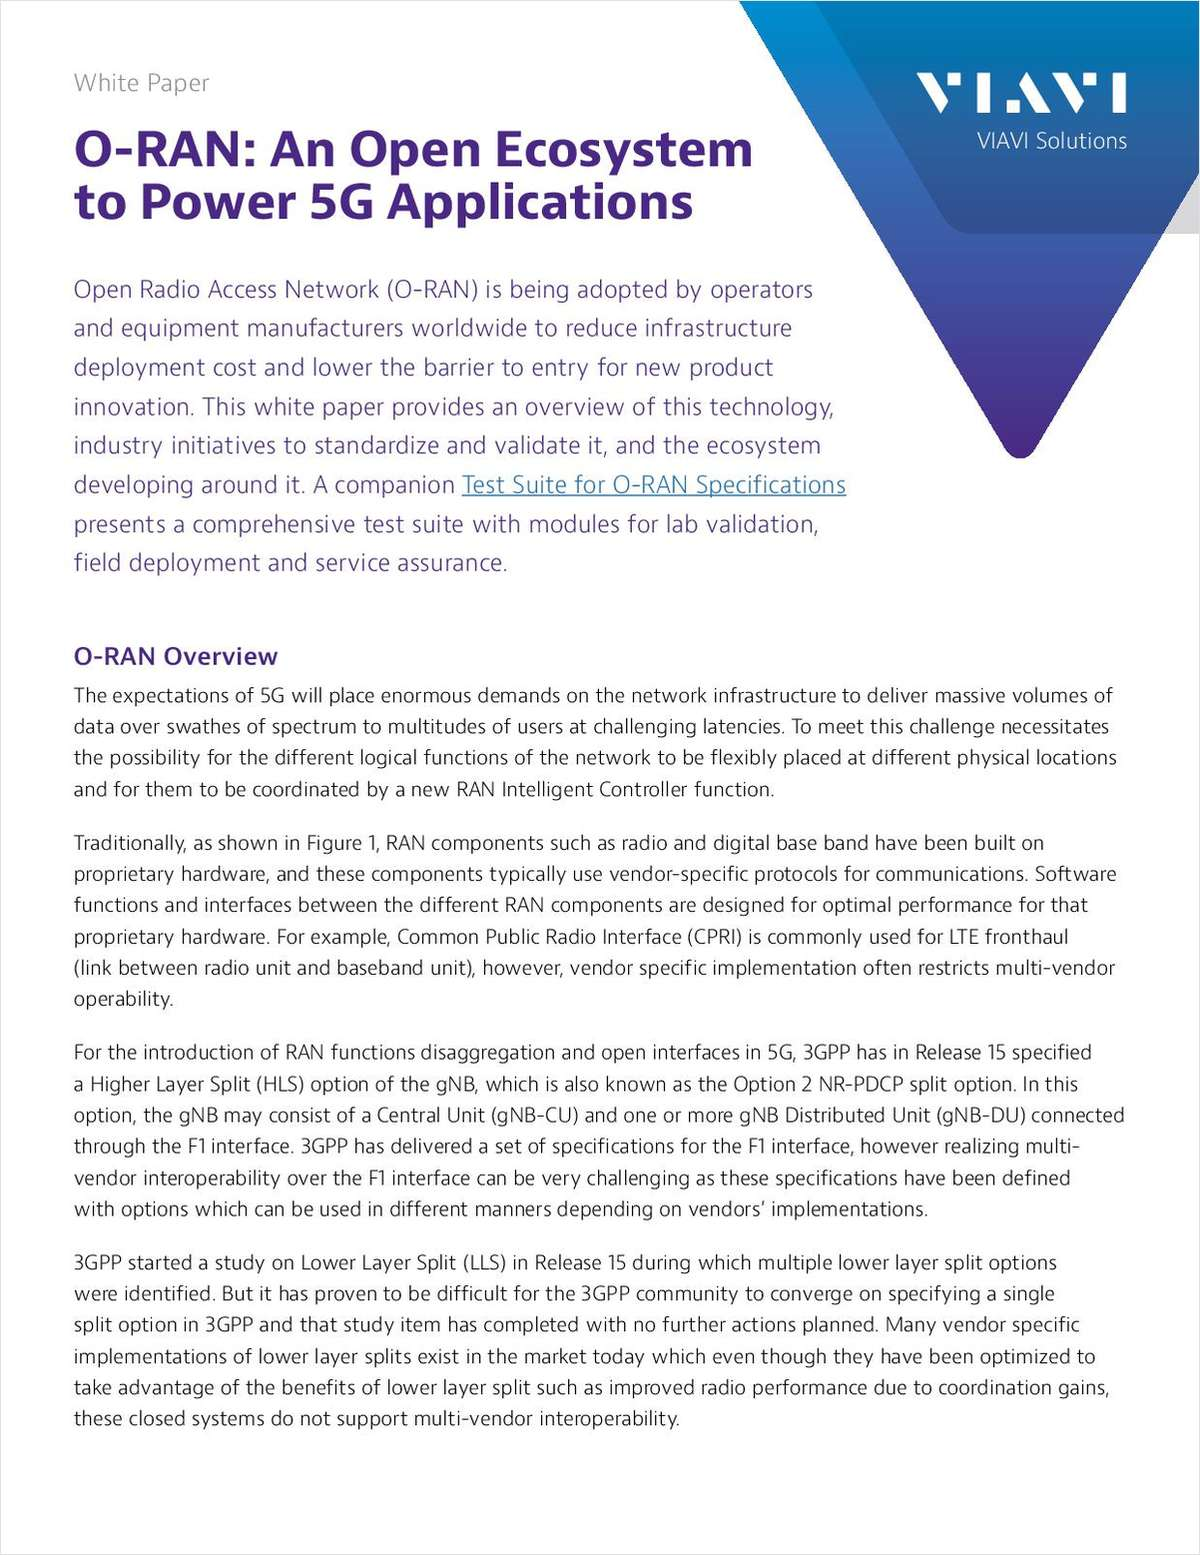 O-RAN: an Open Ecosystem to Power 5G Applications